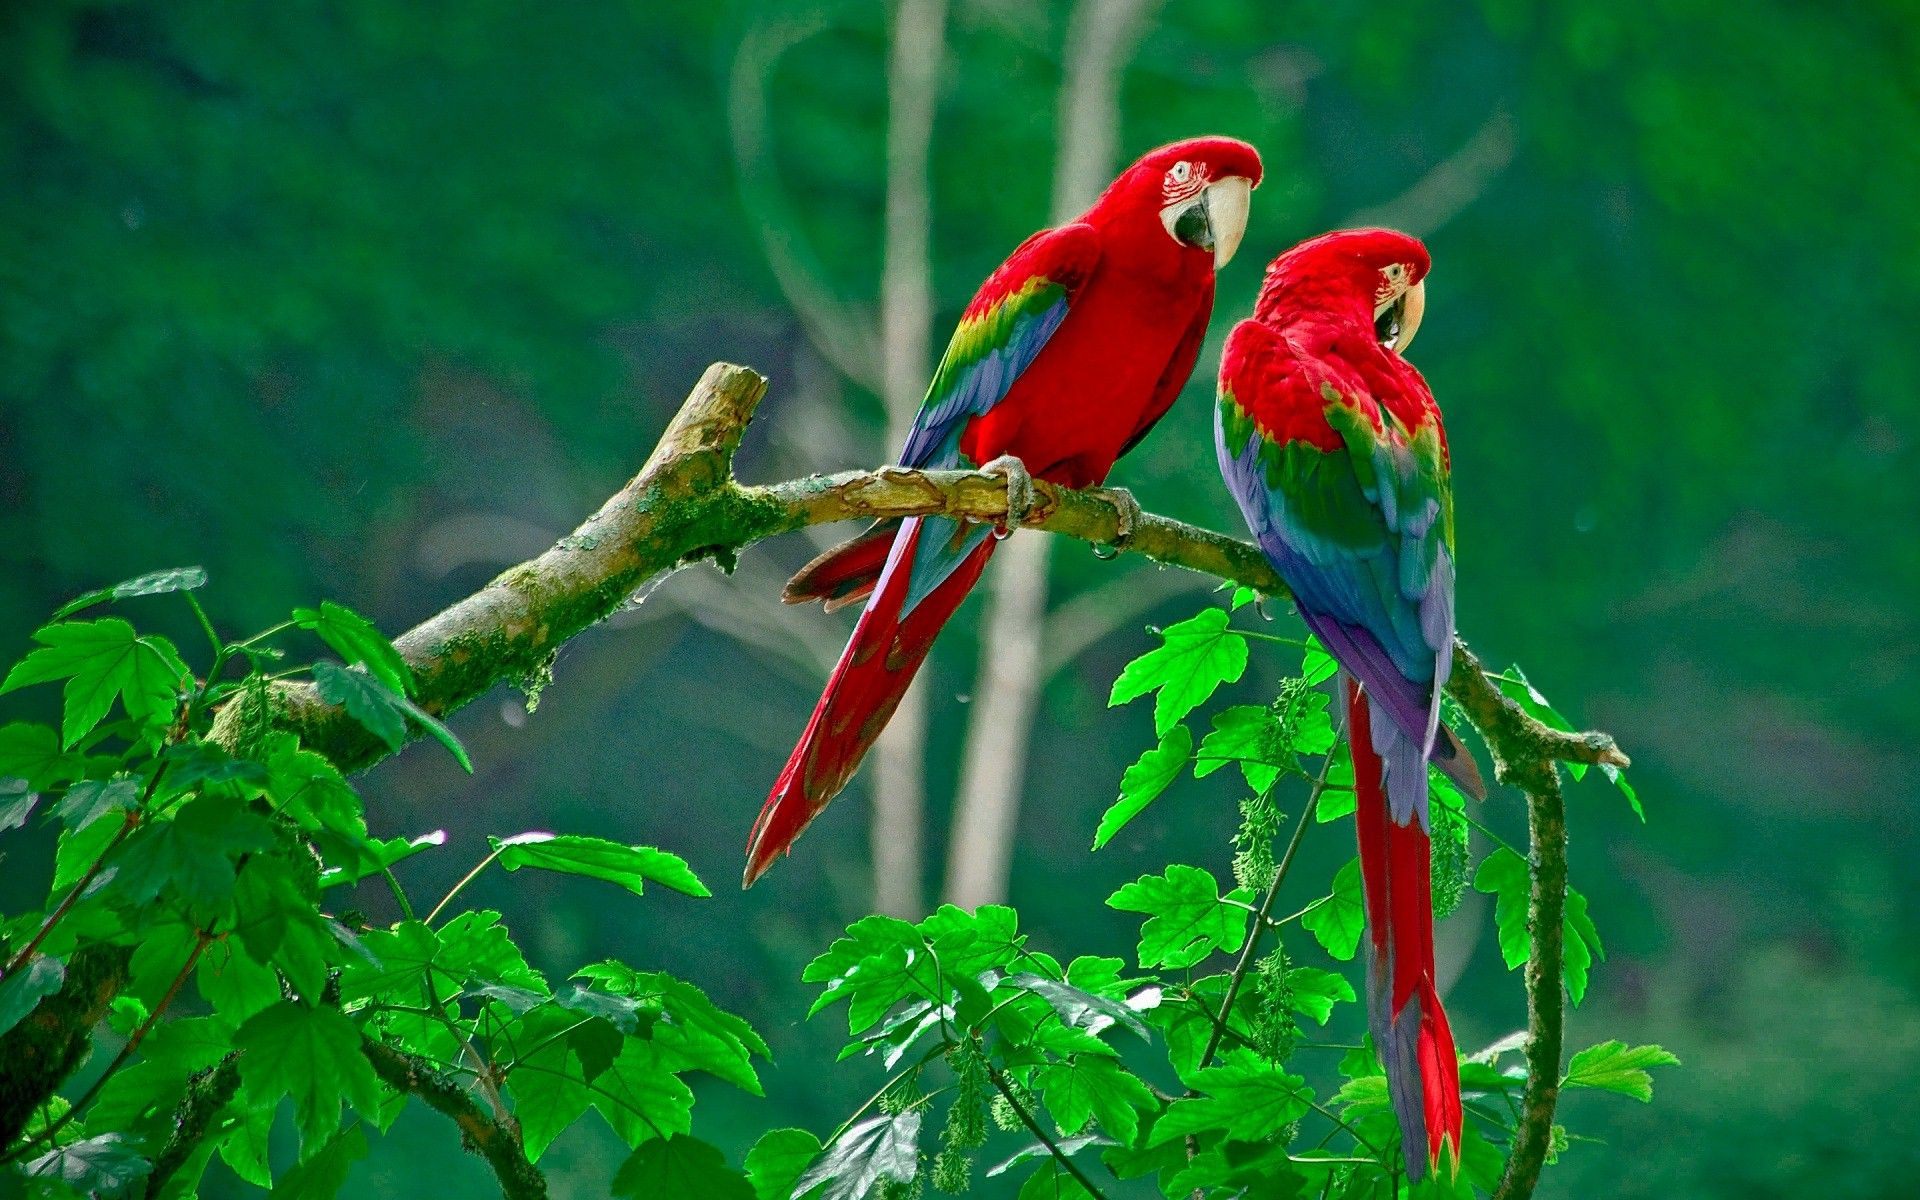 Parrot Hd Photos Bird Wallpapers Images Pictures Download Birds